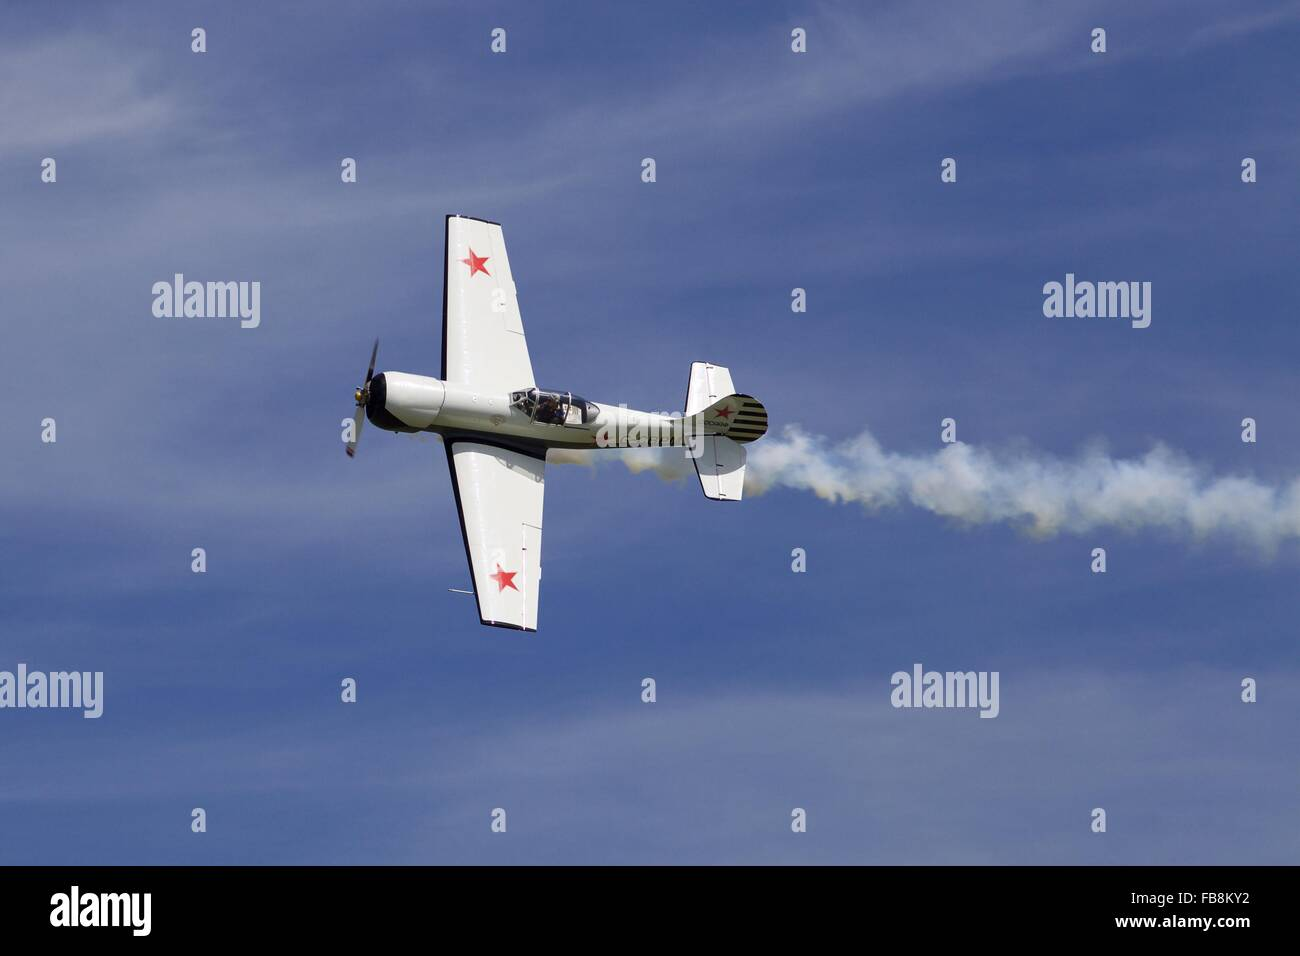 A Russian Yakovlev Yak-50 airplane, built 1949 as experimental turbojet, England - Stock Image